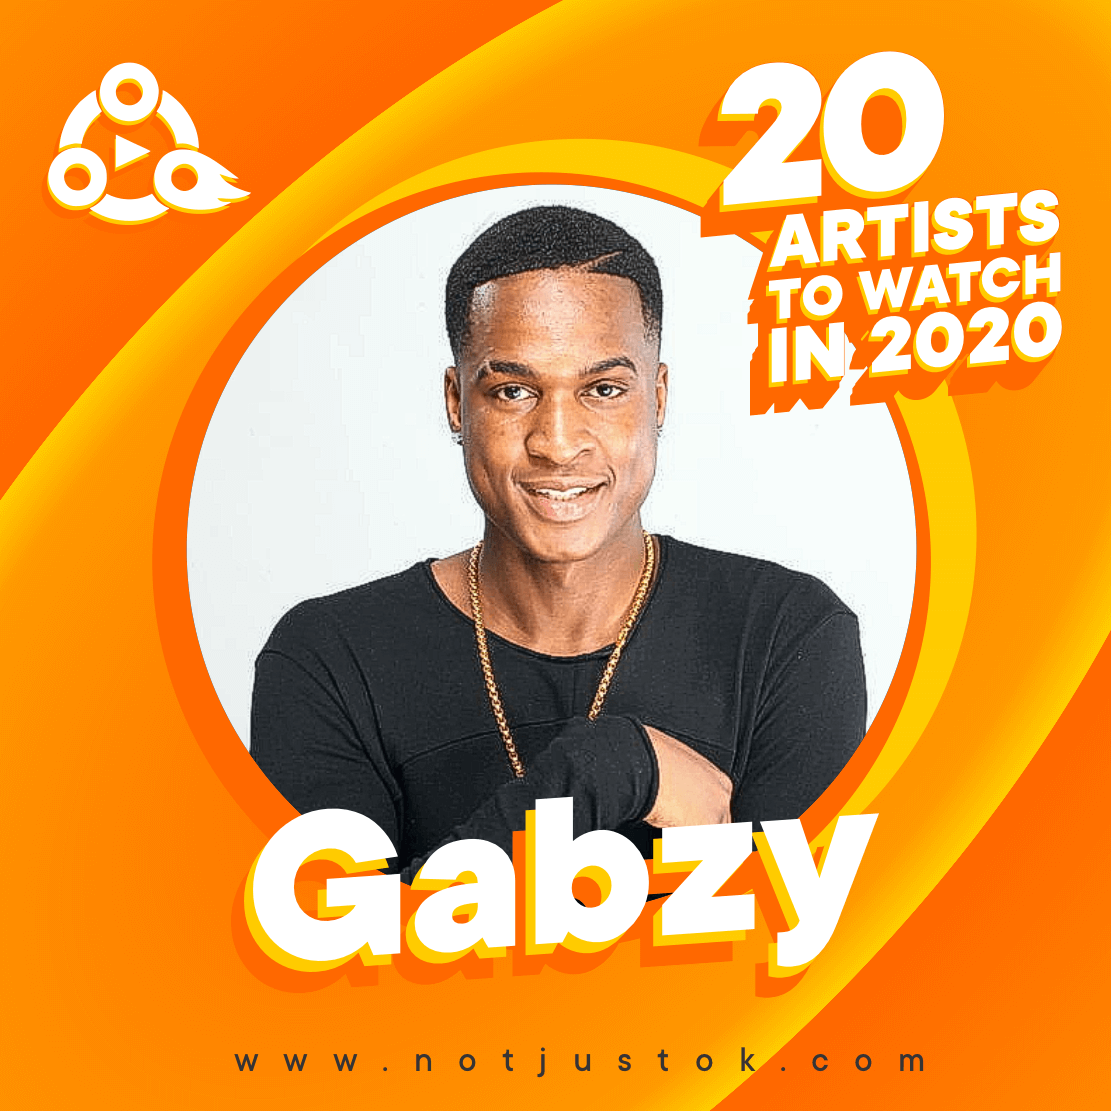 The 20 Artists To Watch In 2020 - Gabzy